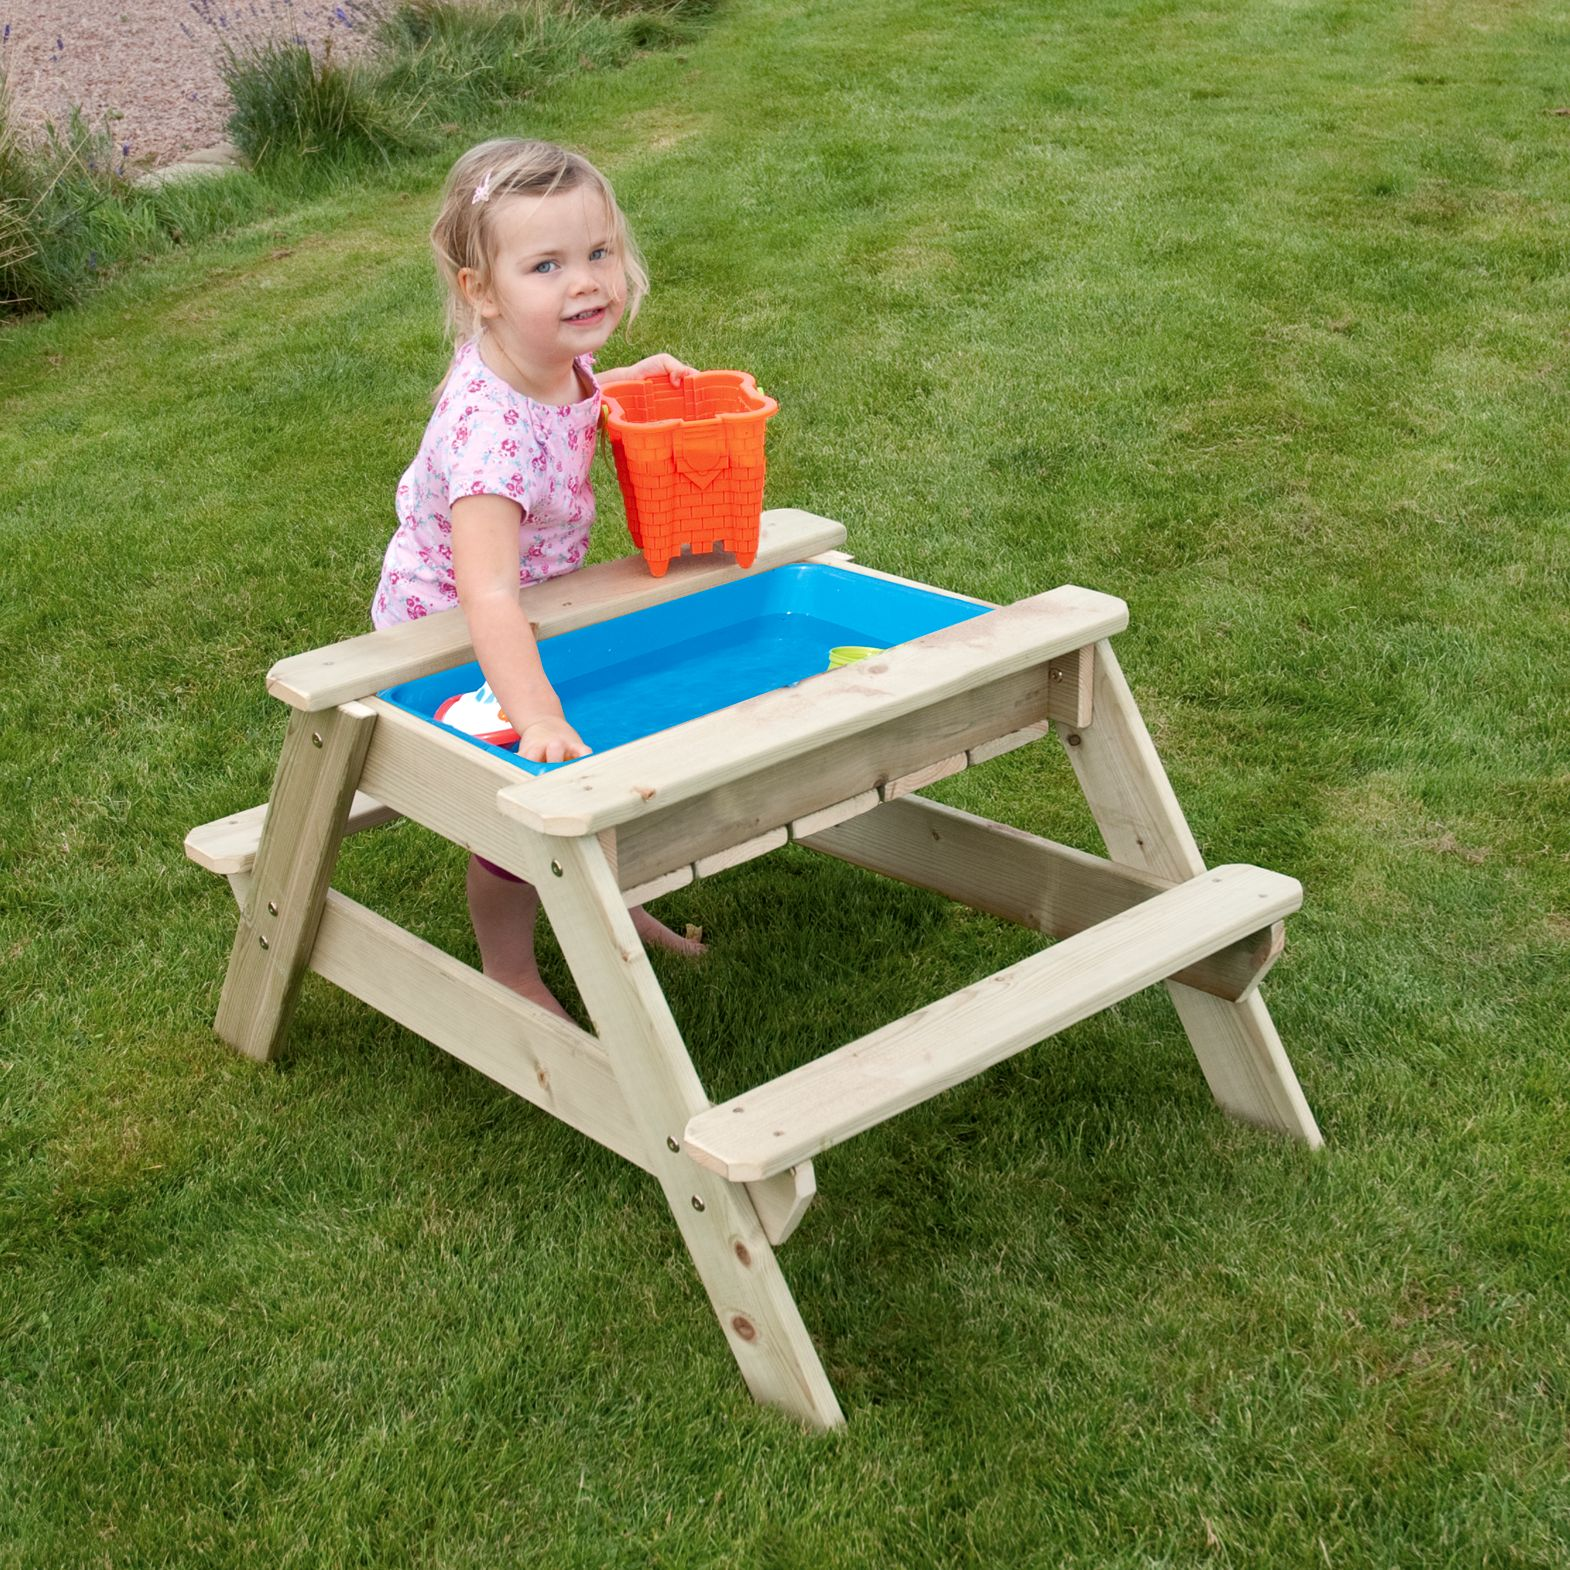 TP Toys TP Toys TP285 Early Fun Picnic Table Sandpit